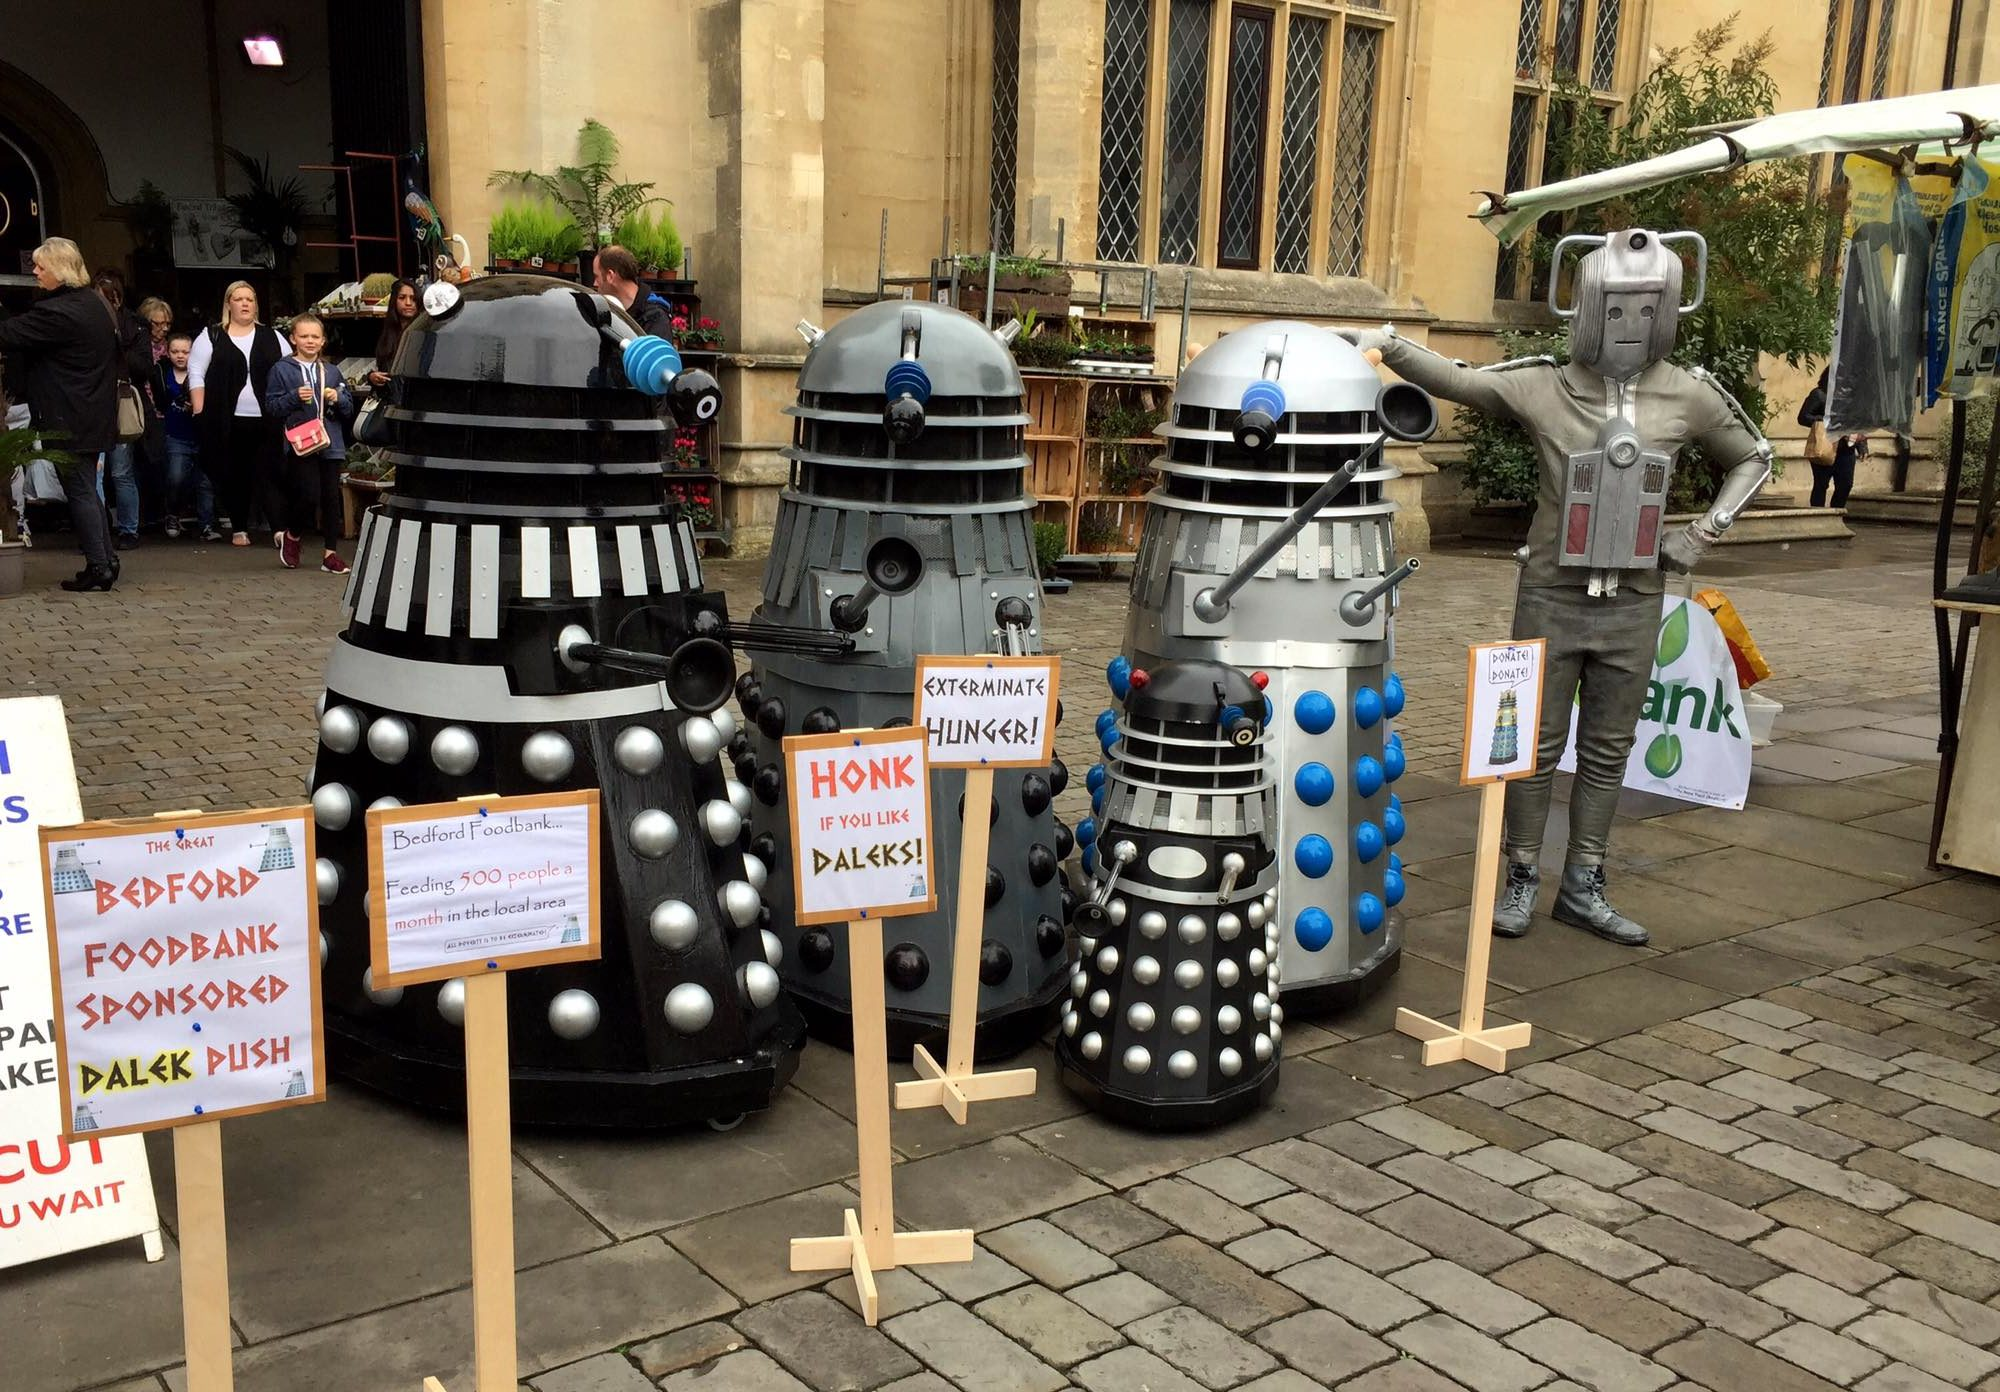 The Great Bedford Foodbank Sponsored Dalek Push The Doctor